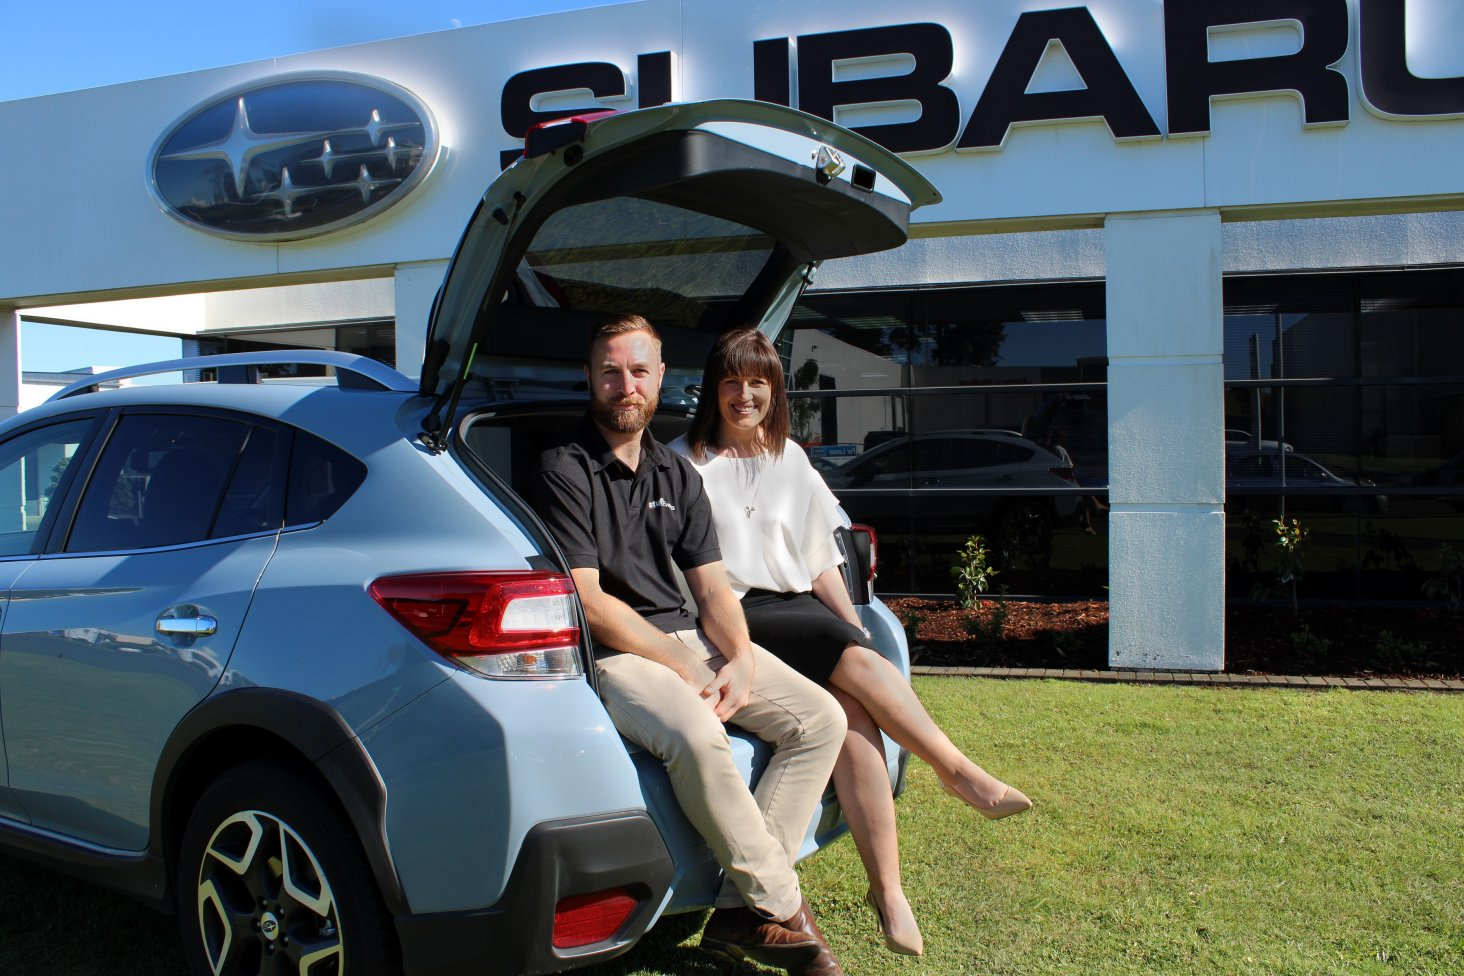 Subaru of New Zealand's Marketing Manager Daile Stephens and Stuff Event Manager Henry McIernon with the Subaru XV.